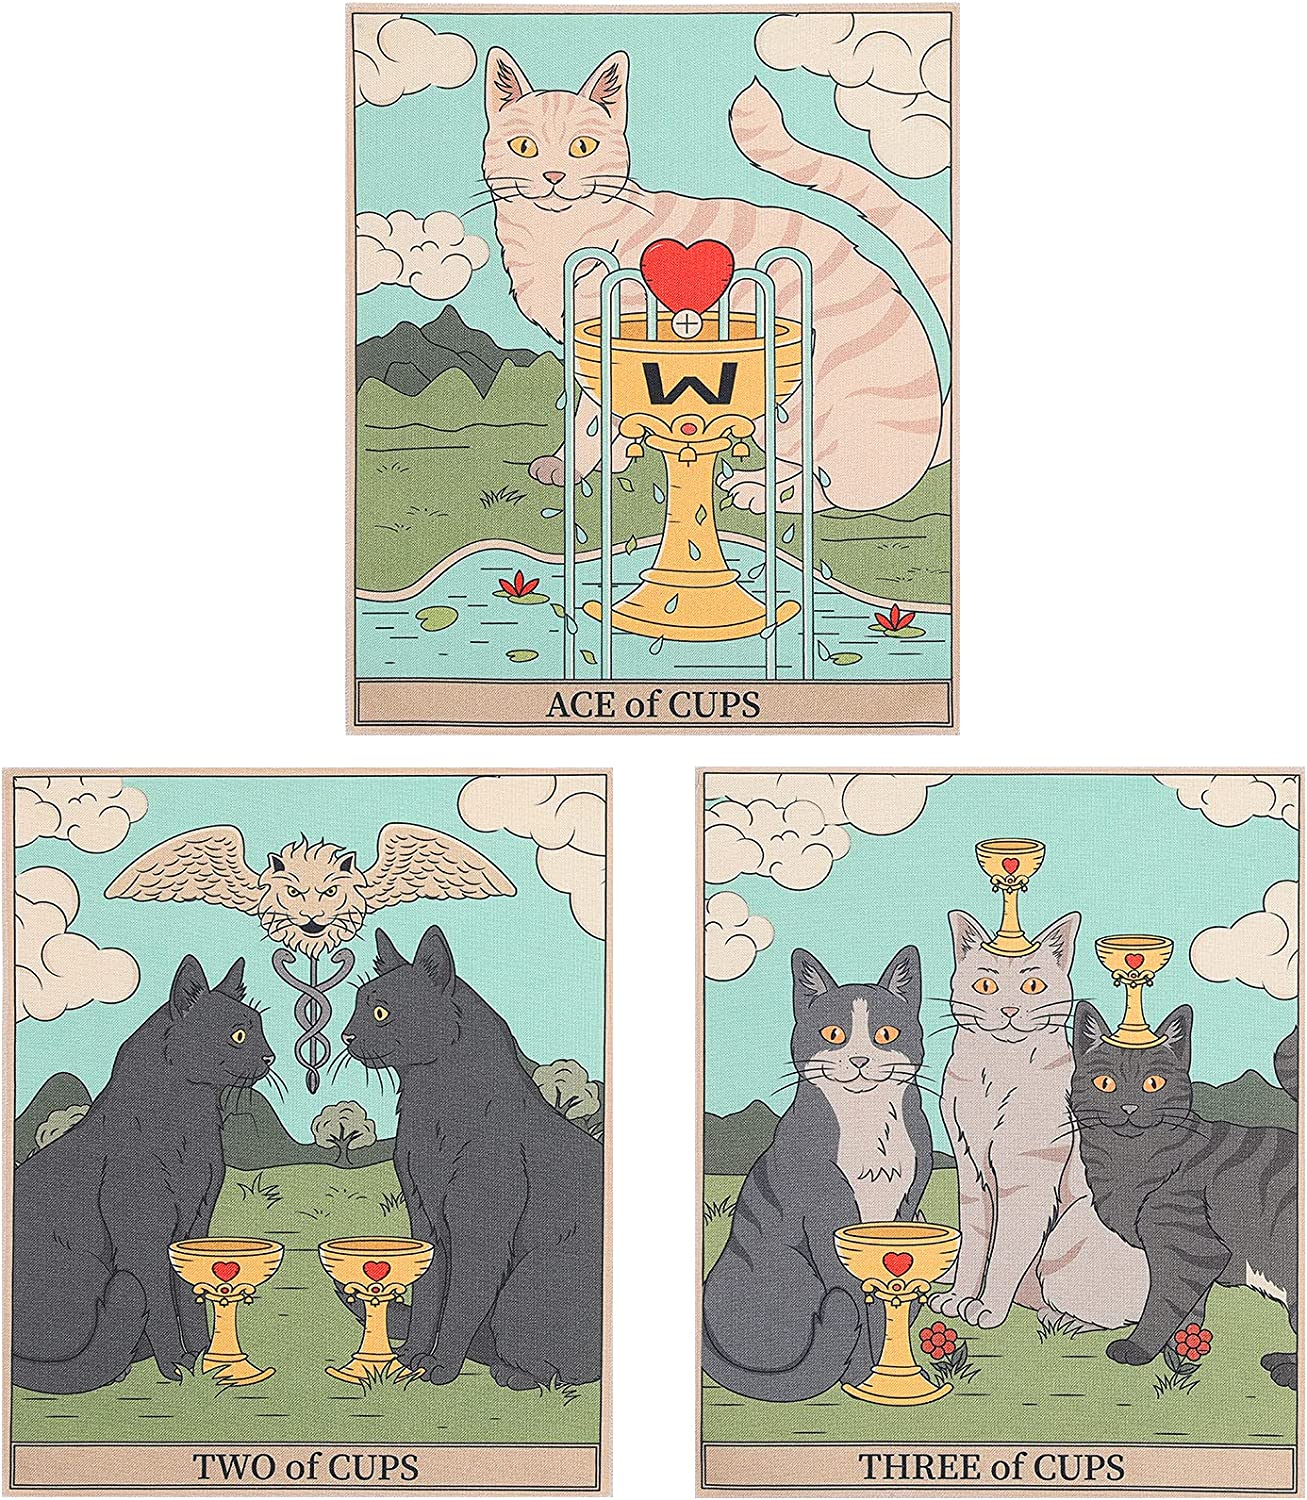 AWAYTR 3Pcs Small Tarot Tapestry - Cat Tapestry Wall Hanging for Livingroom Dorm Apartment Bedroom Office Decor(Cups Tapestry,12x16in)